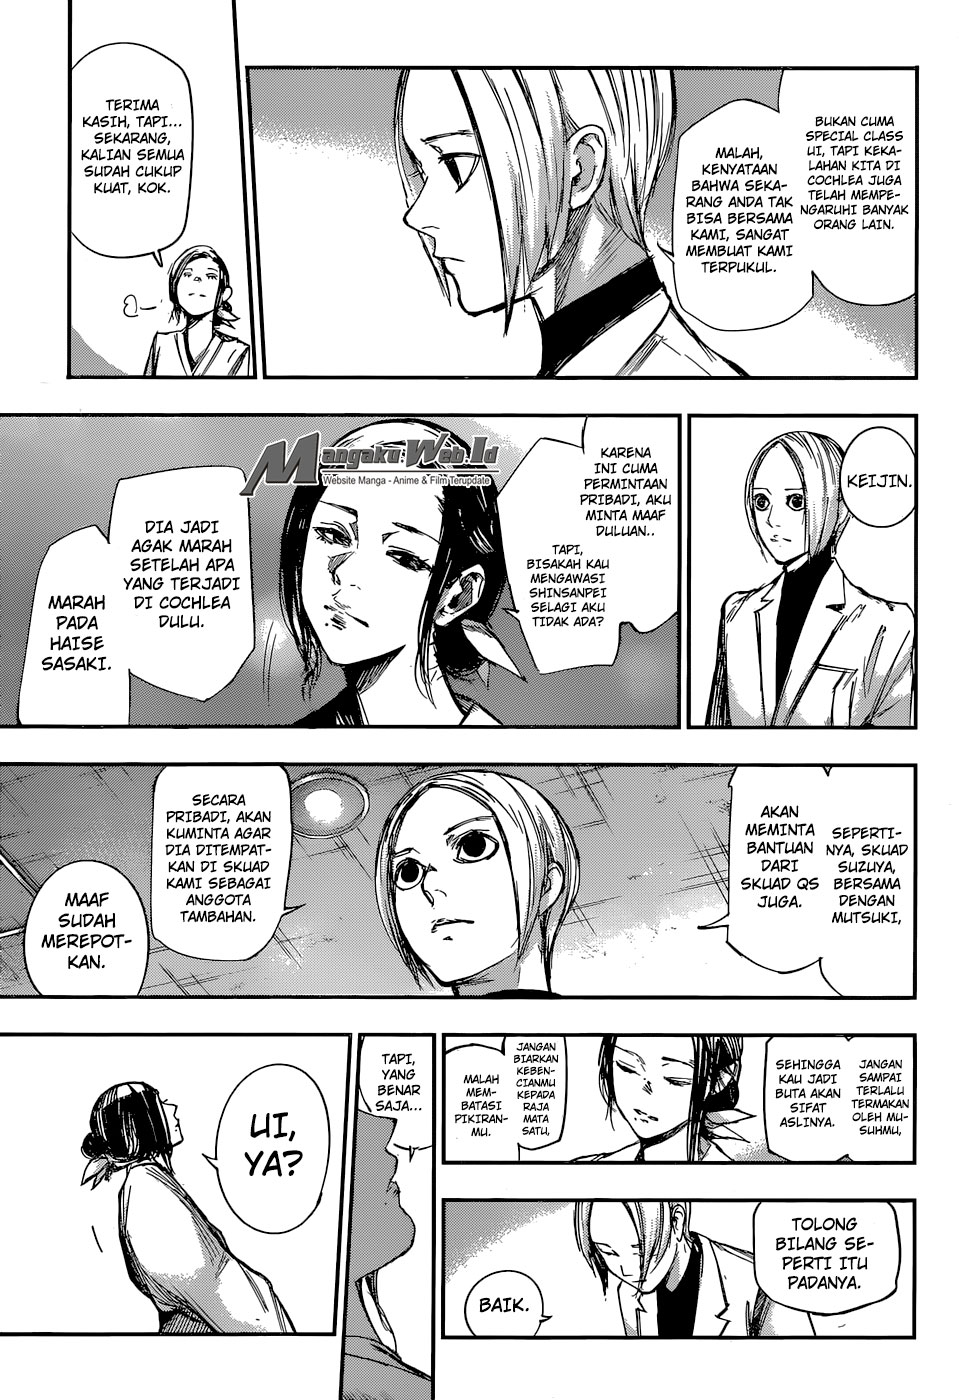 Tokyo Ghoul:re Chapter 104-7